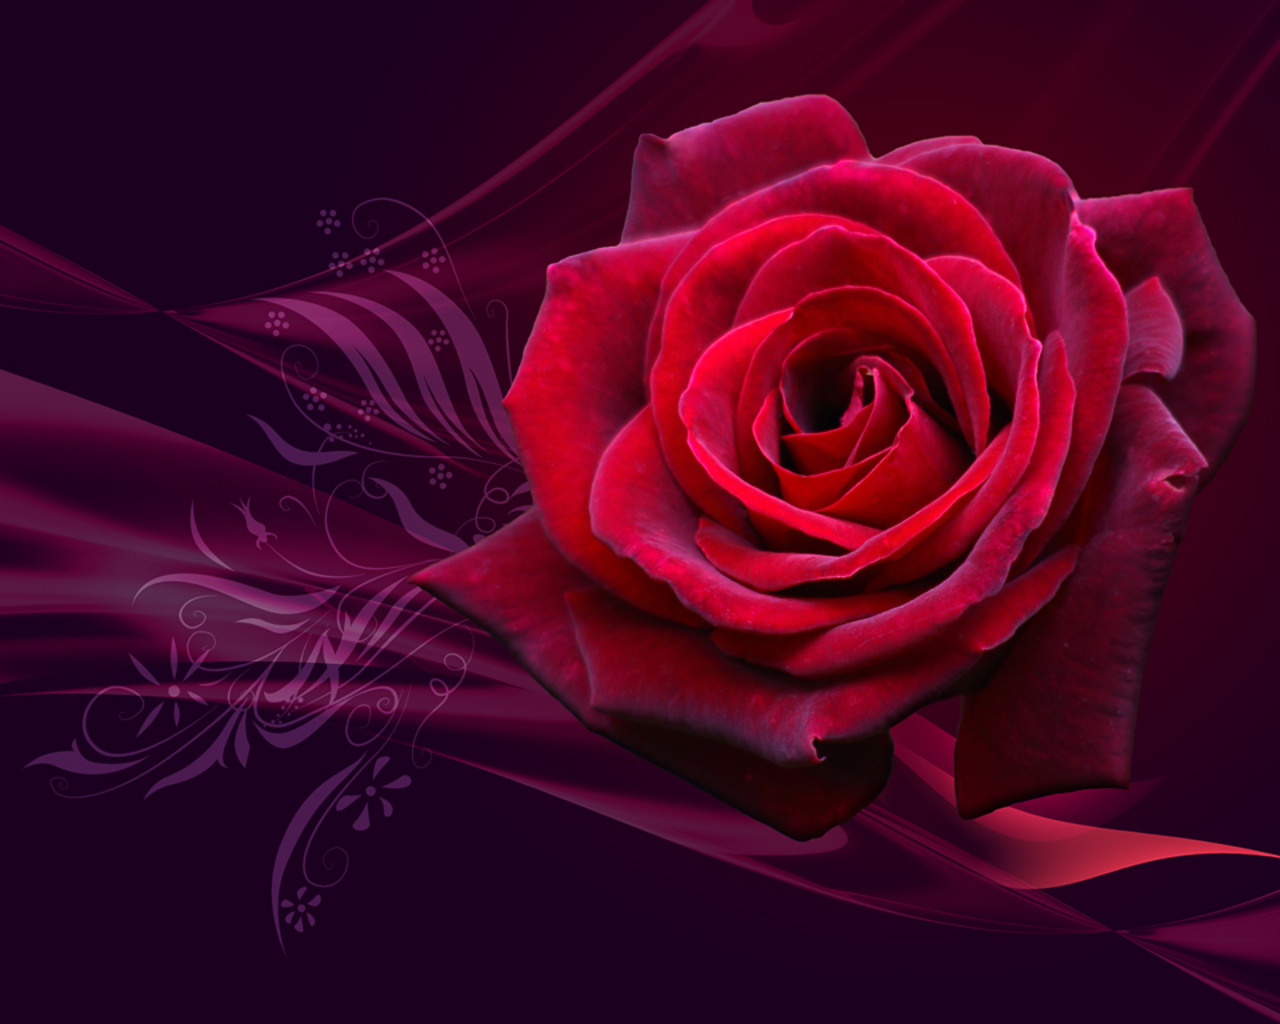 Red Rose Wallpaper 10973 Hd Wallpapers in Flowers   Imagescicom 1280x1024